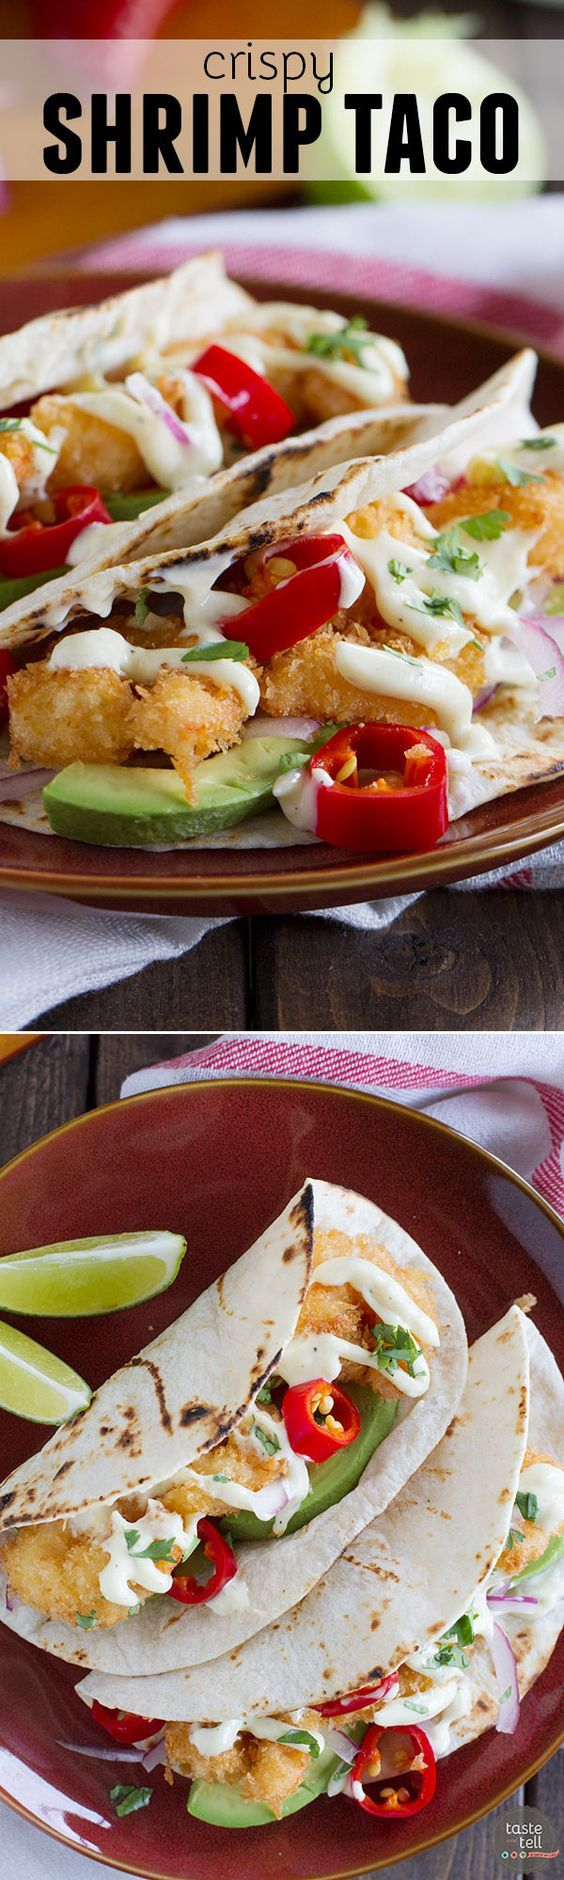 Crispy Rolled Shrimp Tacos Recipe — Dishmaps